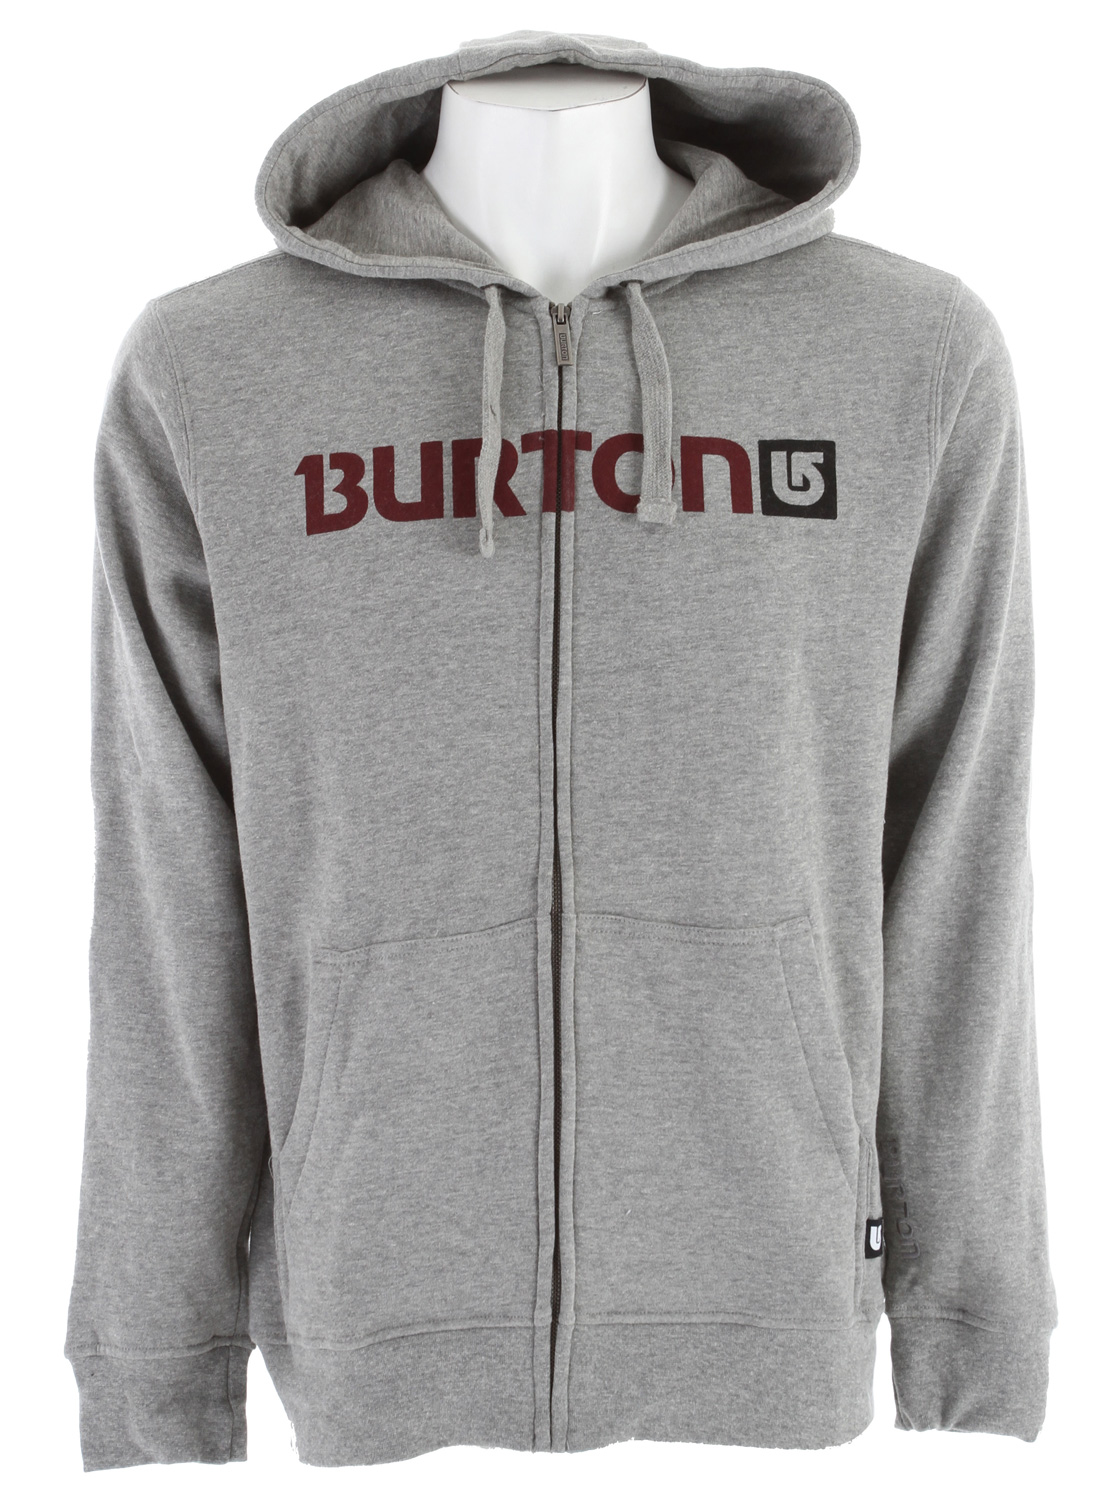 Snowboard Key Features of the Burton Logo Horizontal Fullzip Tsa Hoodie: 80% Cotton, 20% Polyester, 300G Fleece Signature Fit Word Mark Logo Print on Chest - $30.95